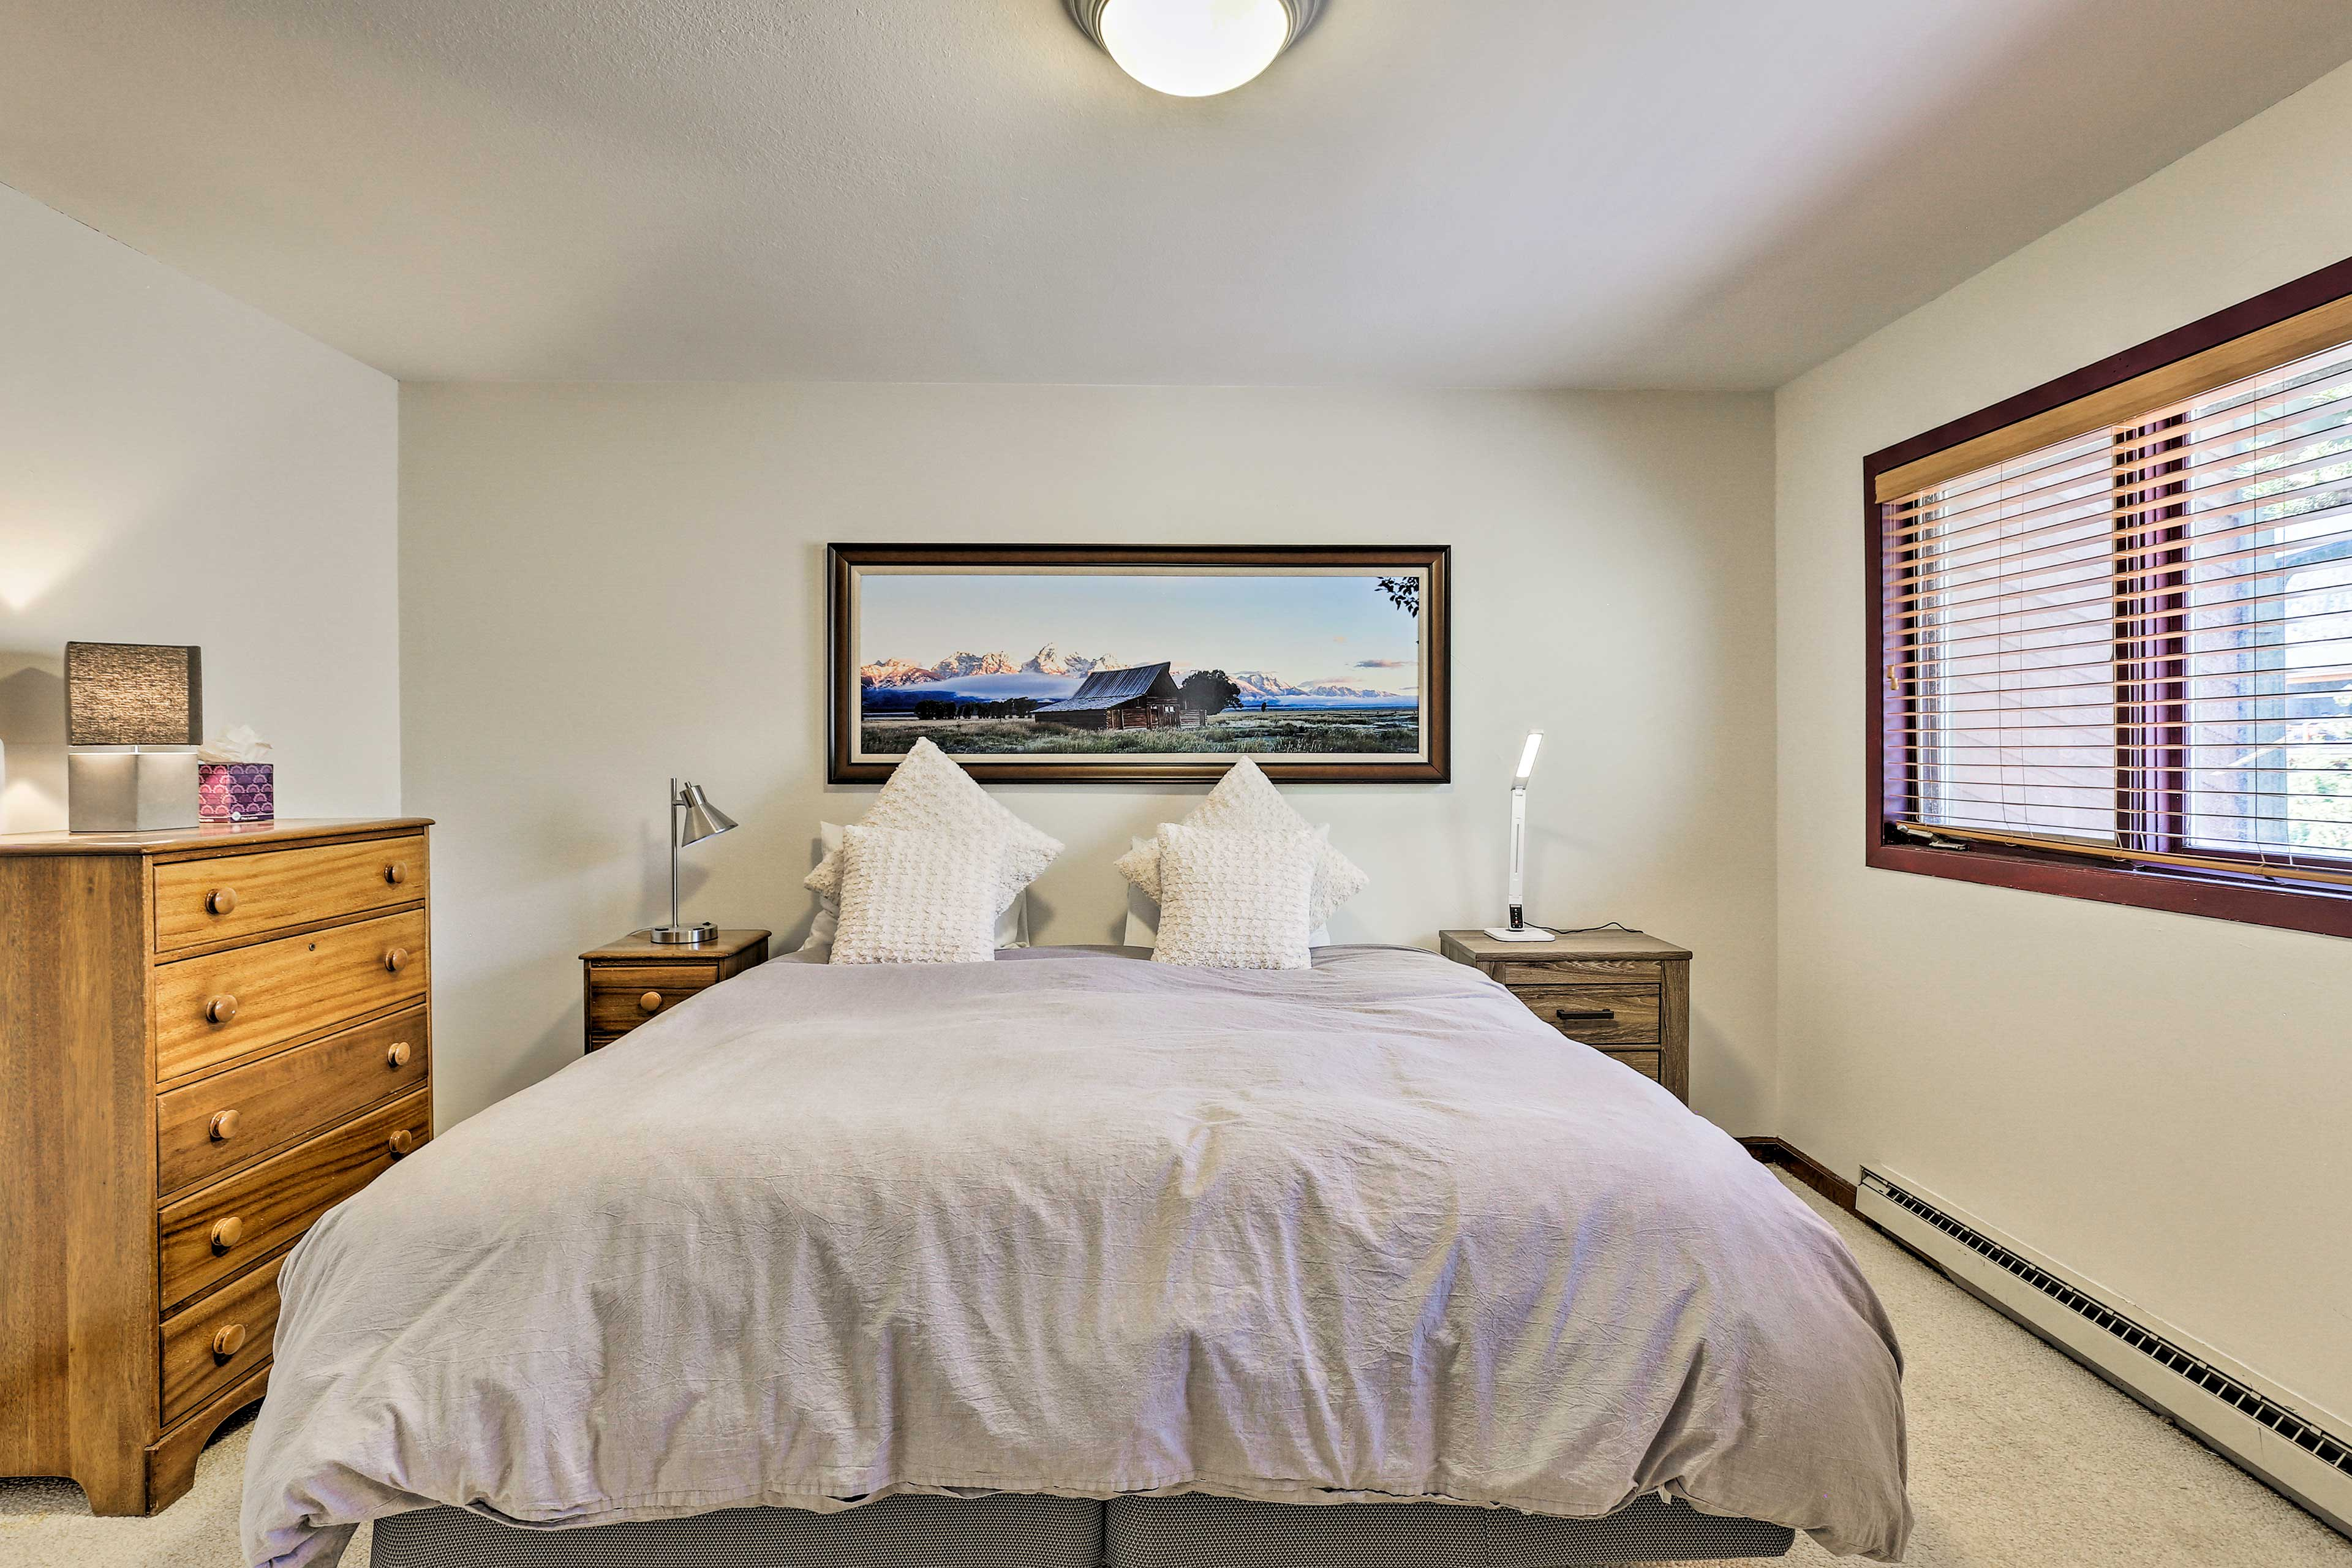 Sink into the king bed in the first bedroom.